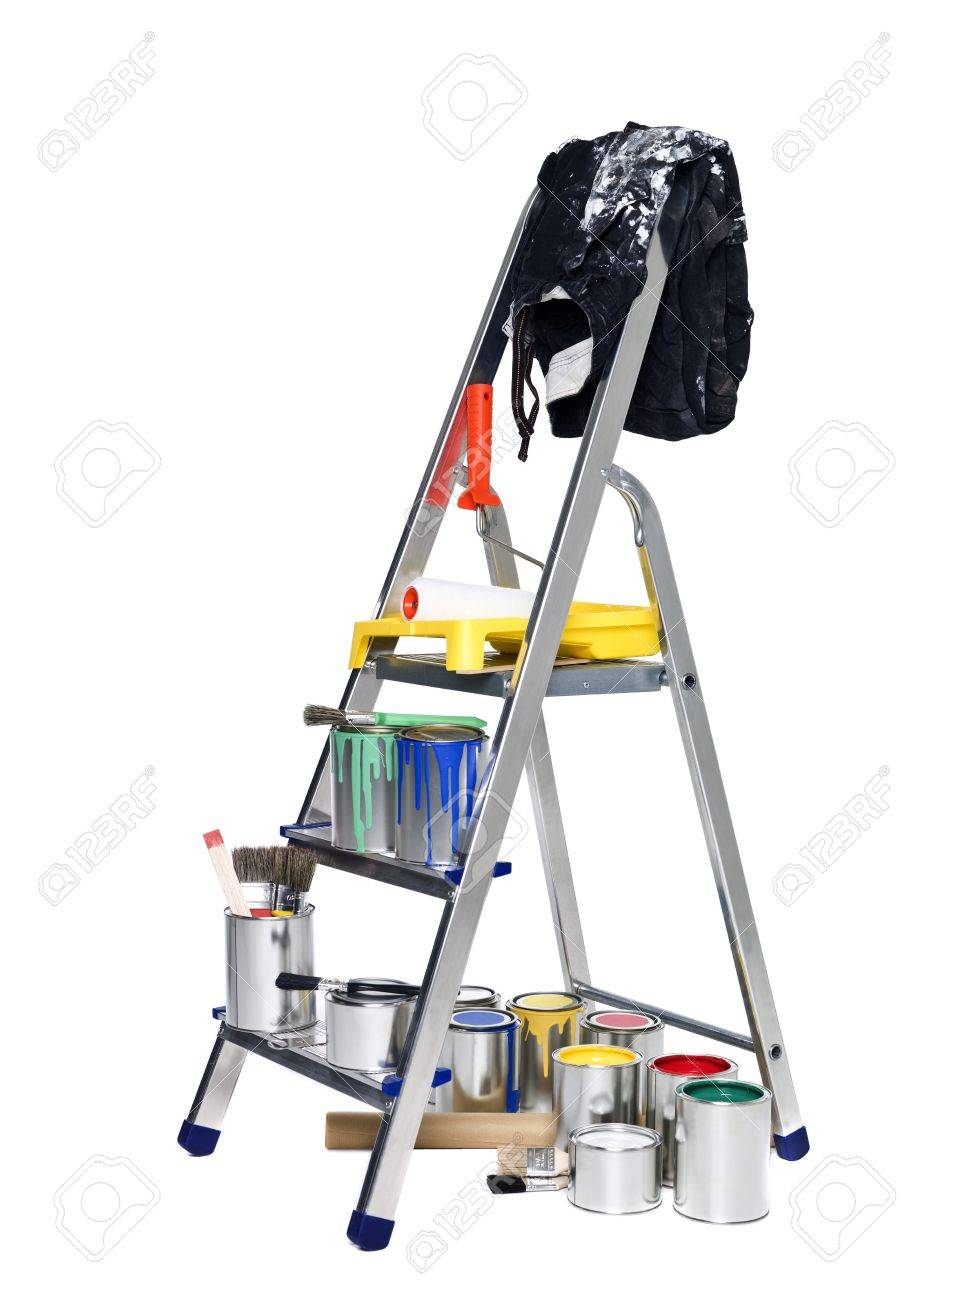 Stepladder with paint cans and brushes isolated on white background Stock Photo - 8732136